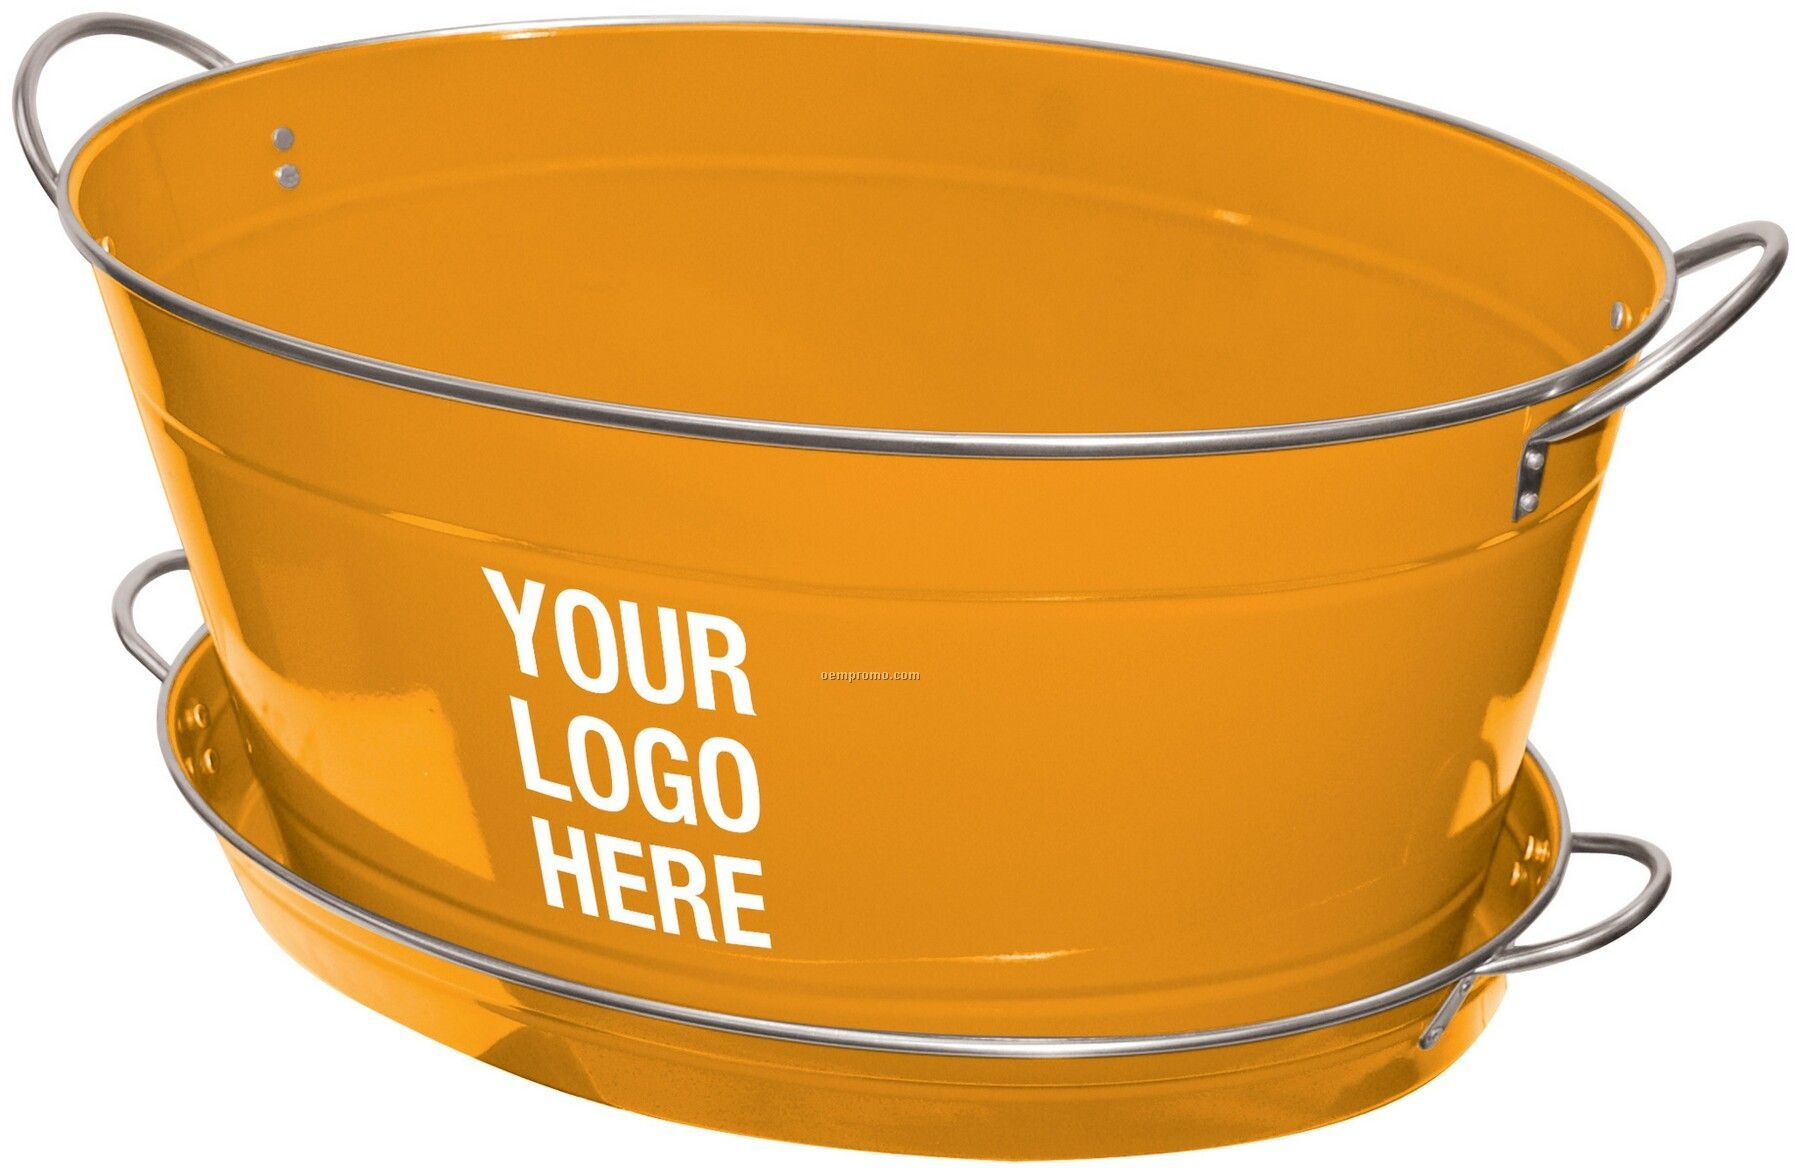 quick tuborangeside view enamel style outdoor tailgating tub metal vintage orangeovaltub oval orange beverage